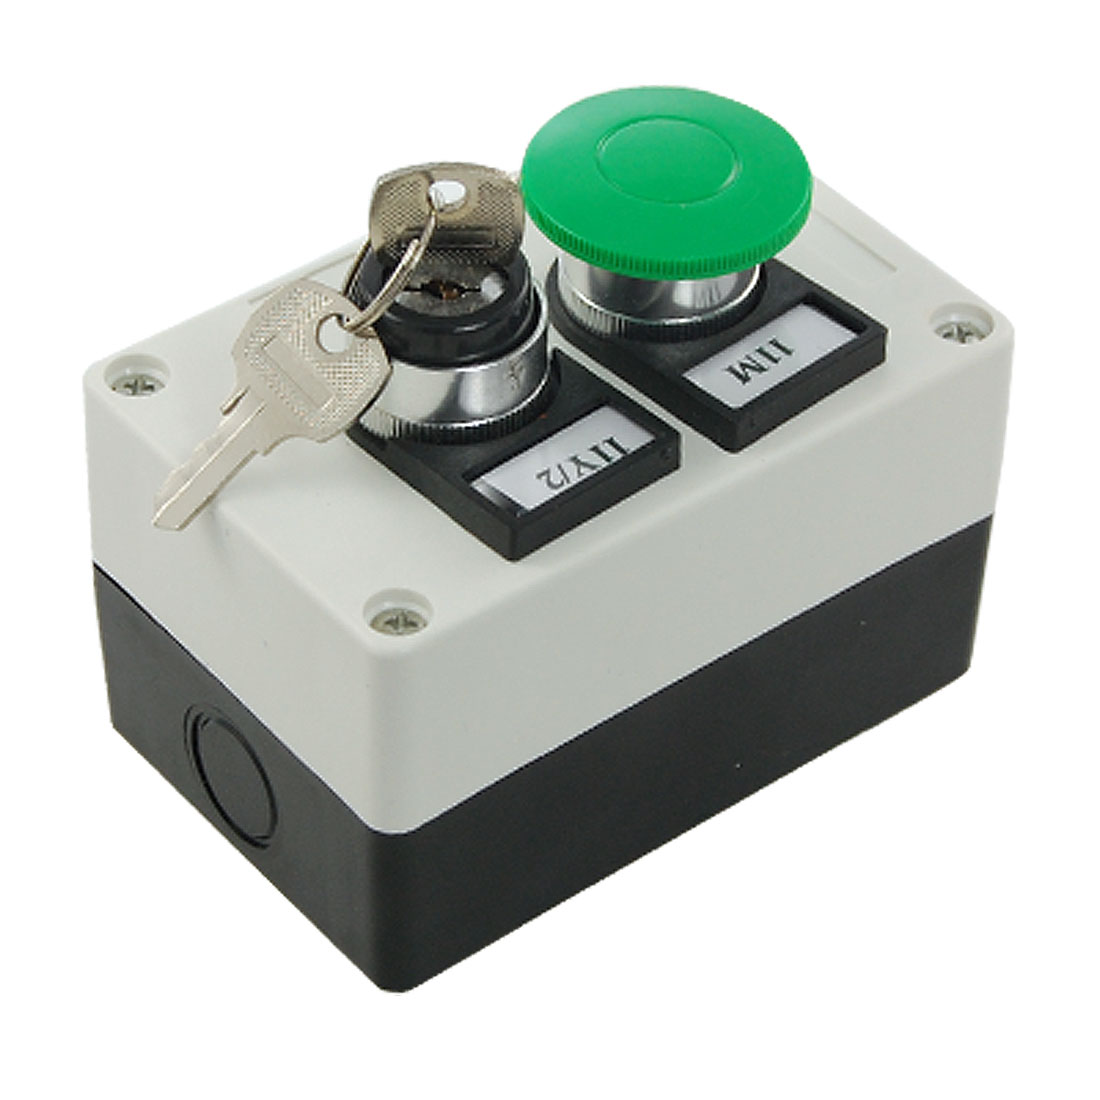 Key Locking On/off Rotary Switch Momentary Mushroom Push Button Station